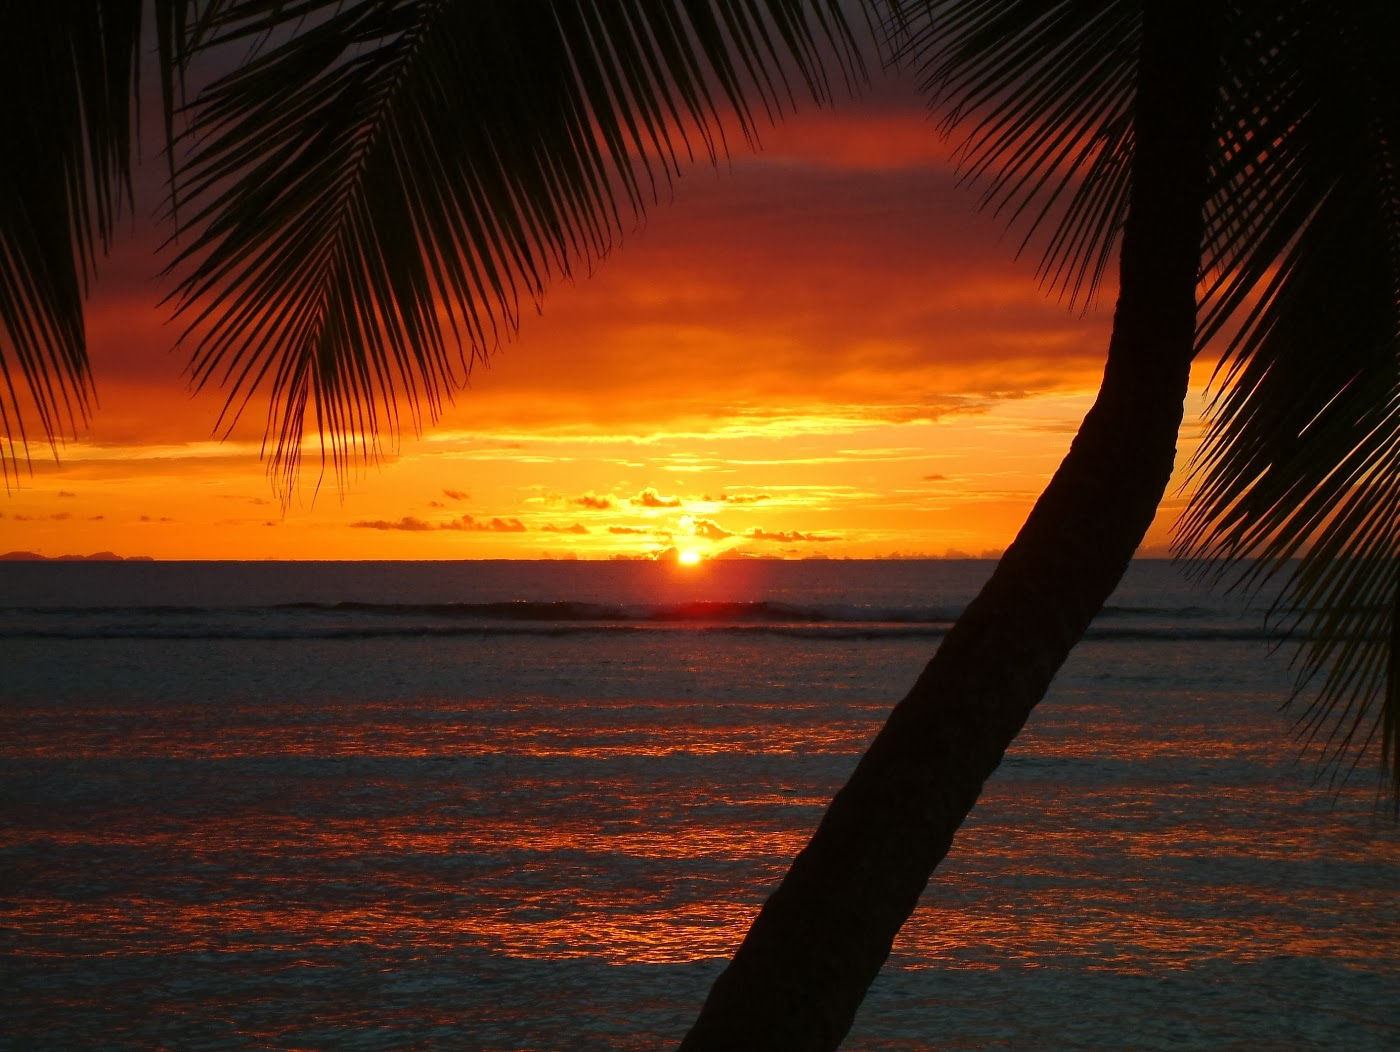 Red sunset over the Caribbean Sea